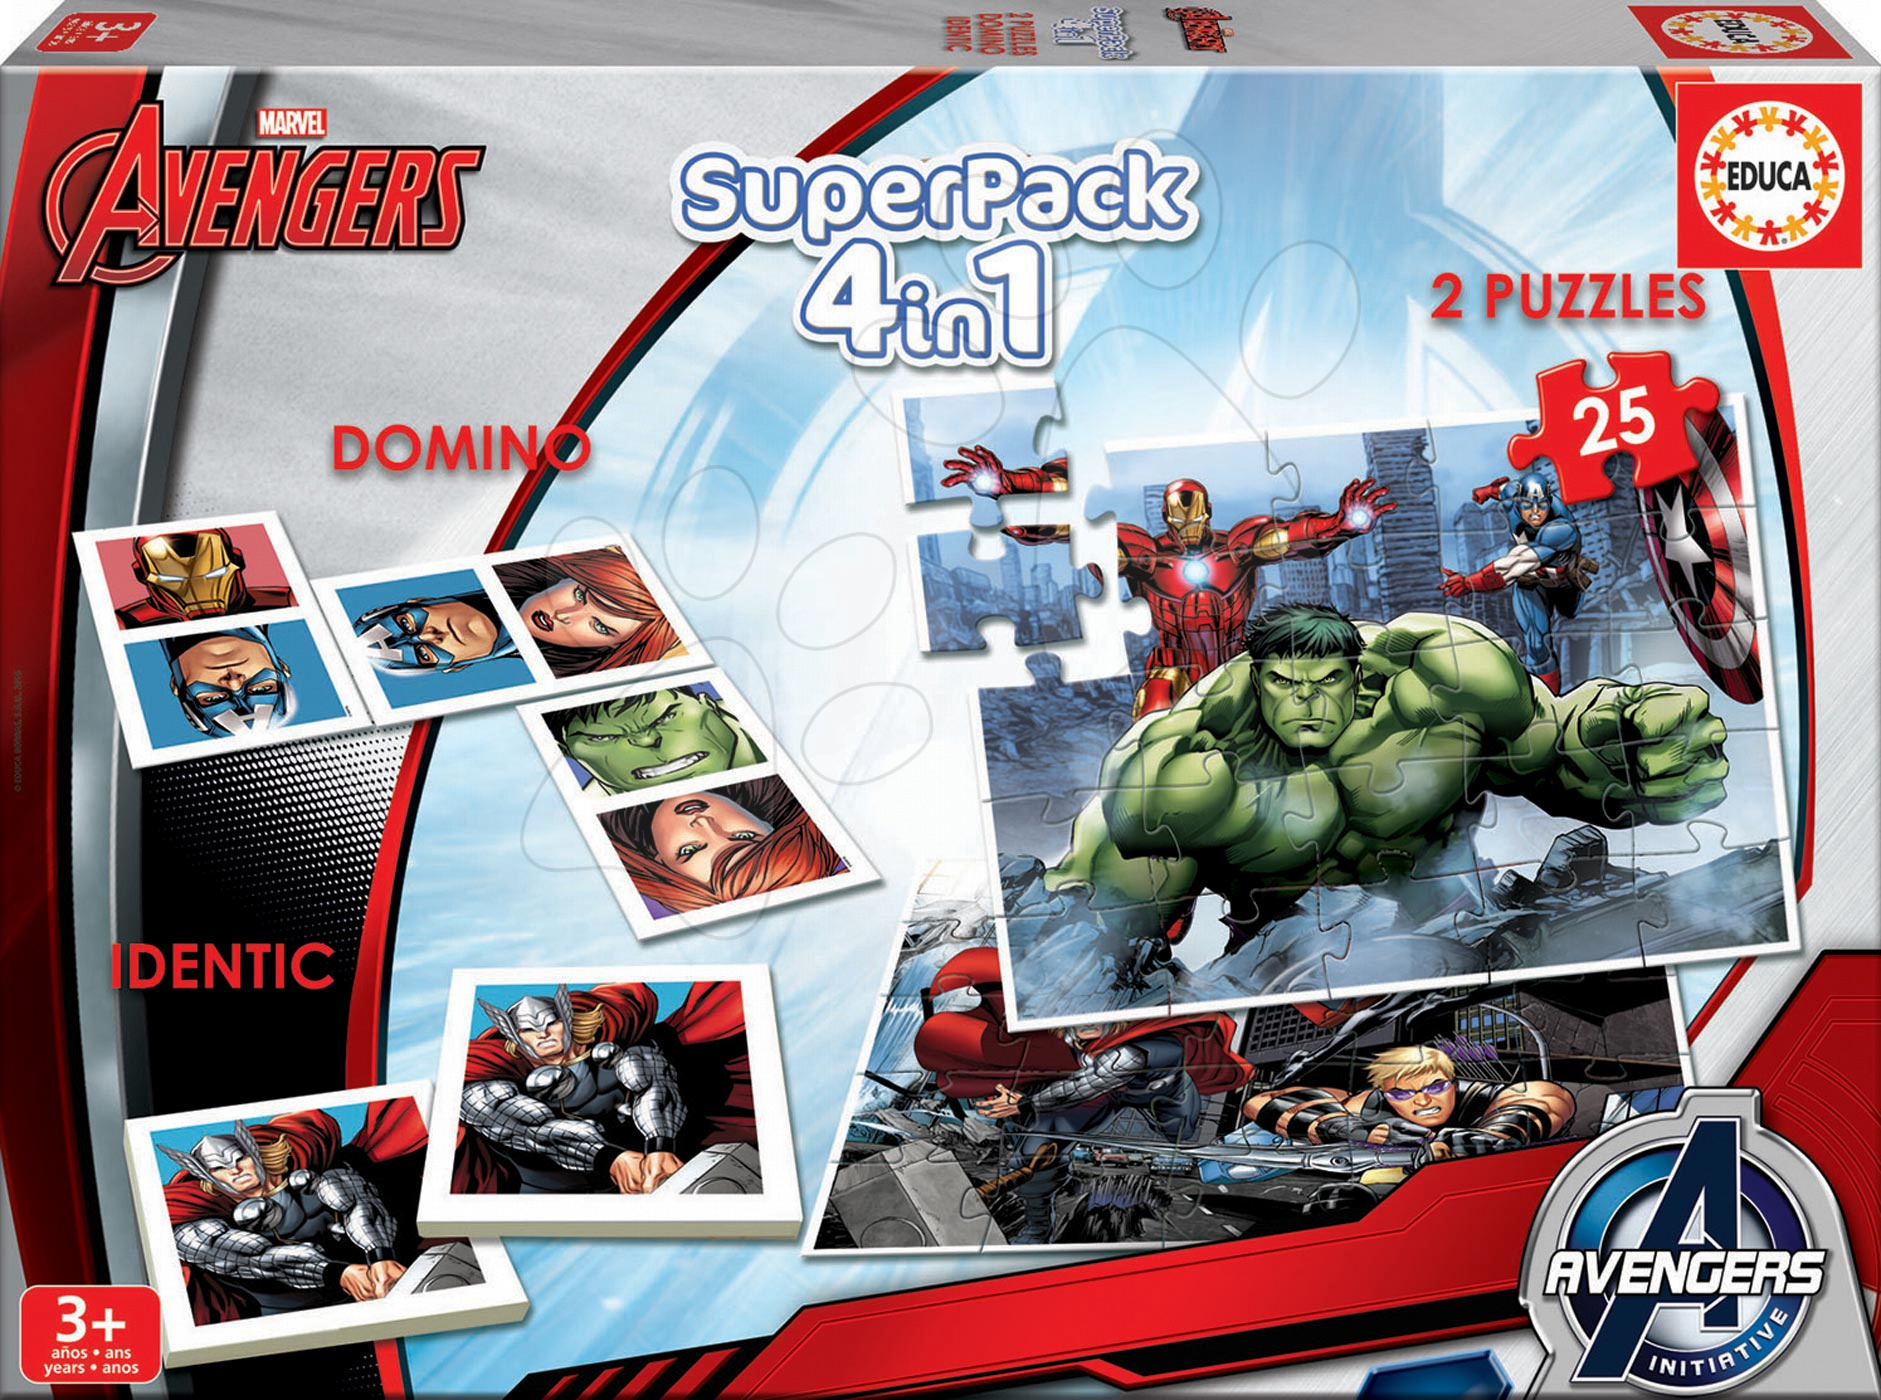 Puzzle Avengers SuperPack 4 v 1 Educa progresivní 2x puzzle, domino a pexeso